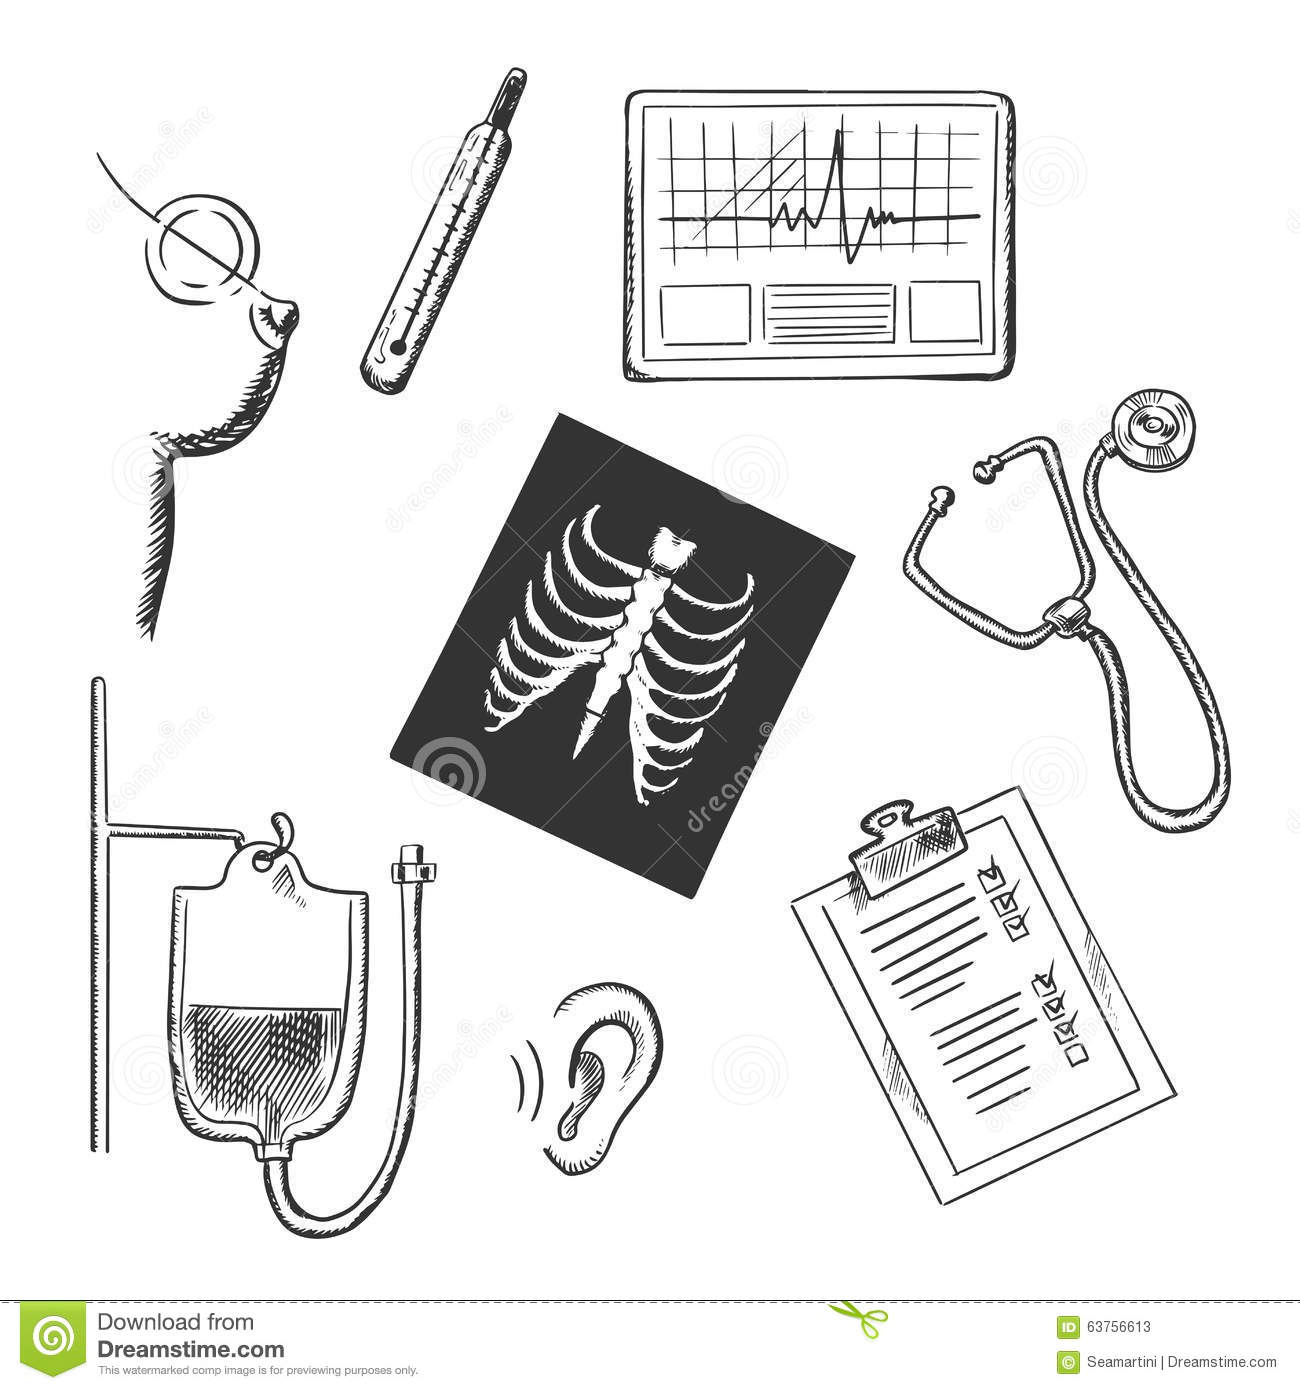 Diagnostics And Medical Test Object Sketches Stock Vector